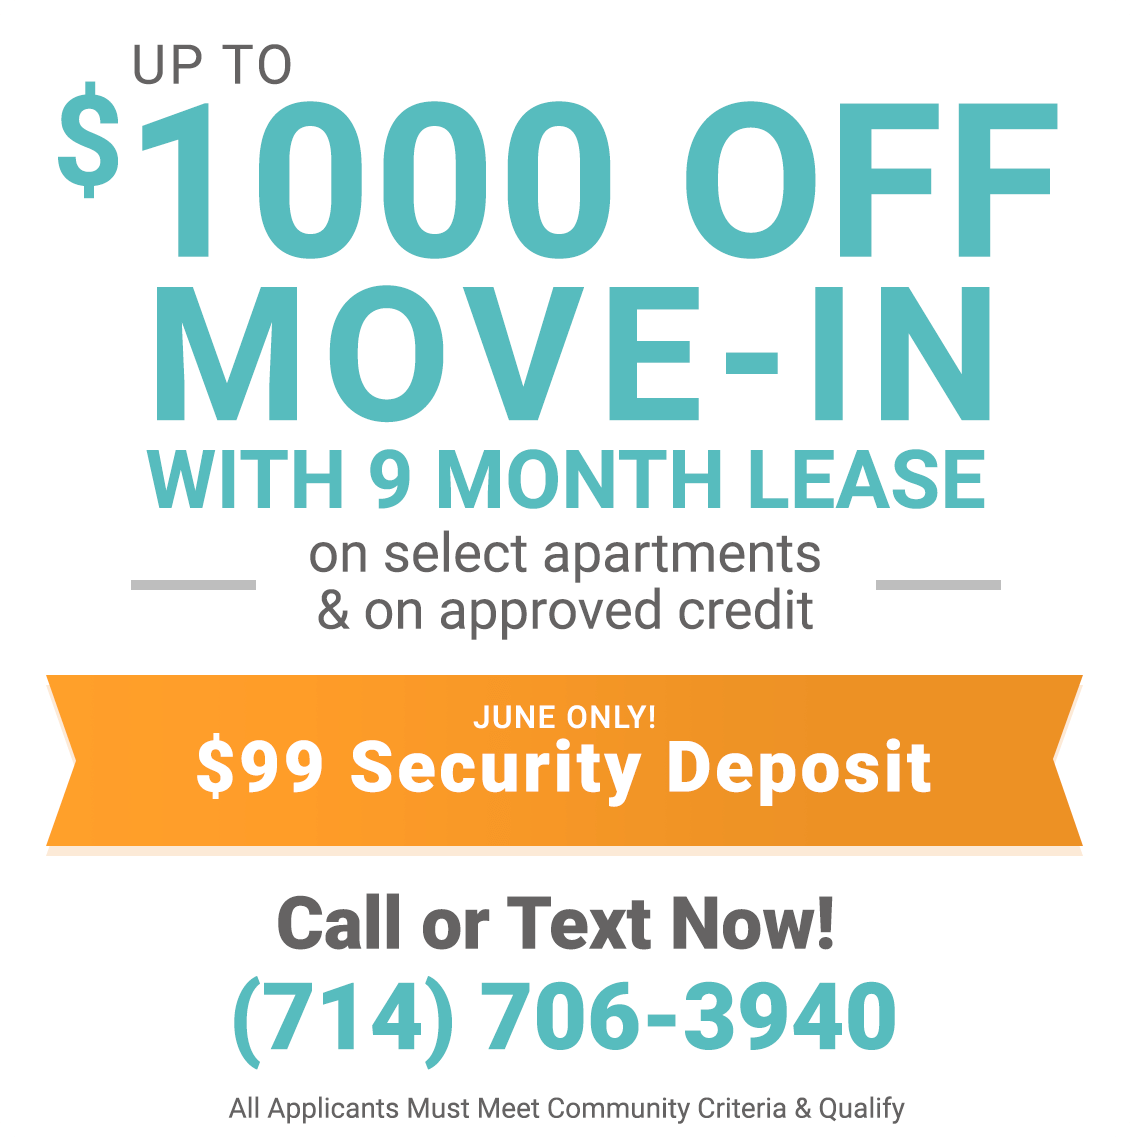 $1000 off move-in with 9 month lease